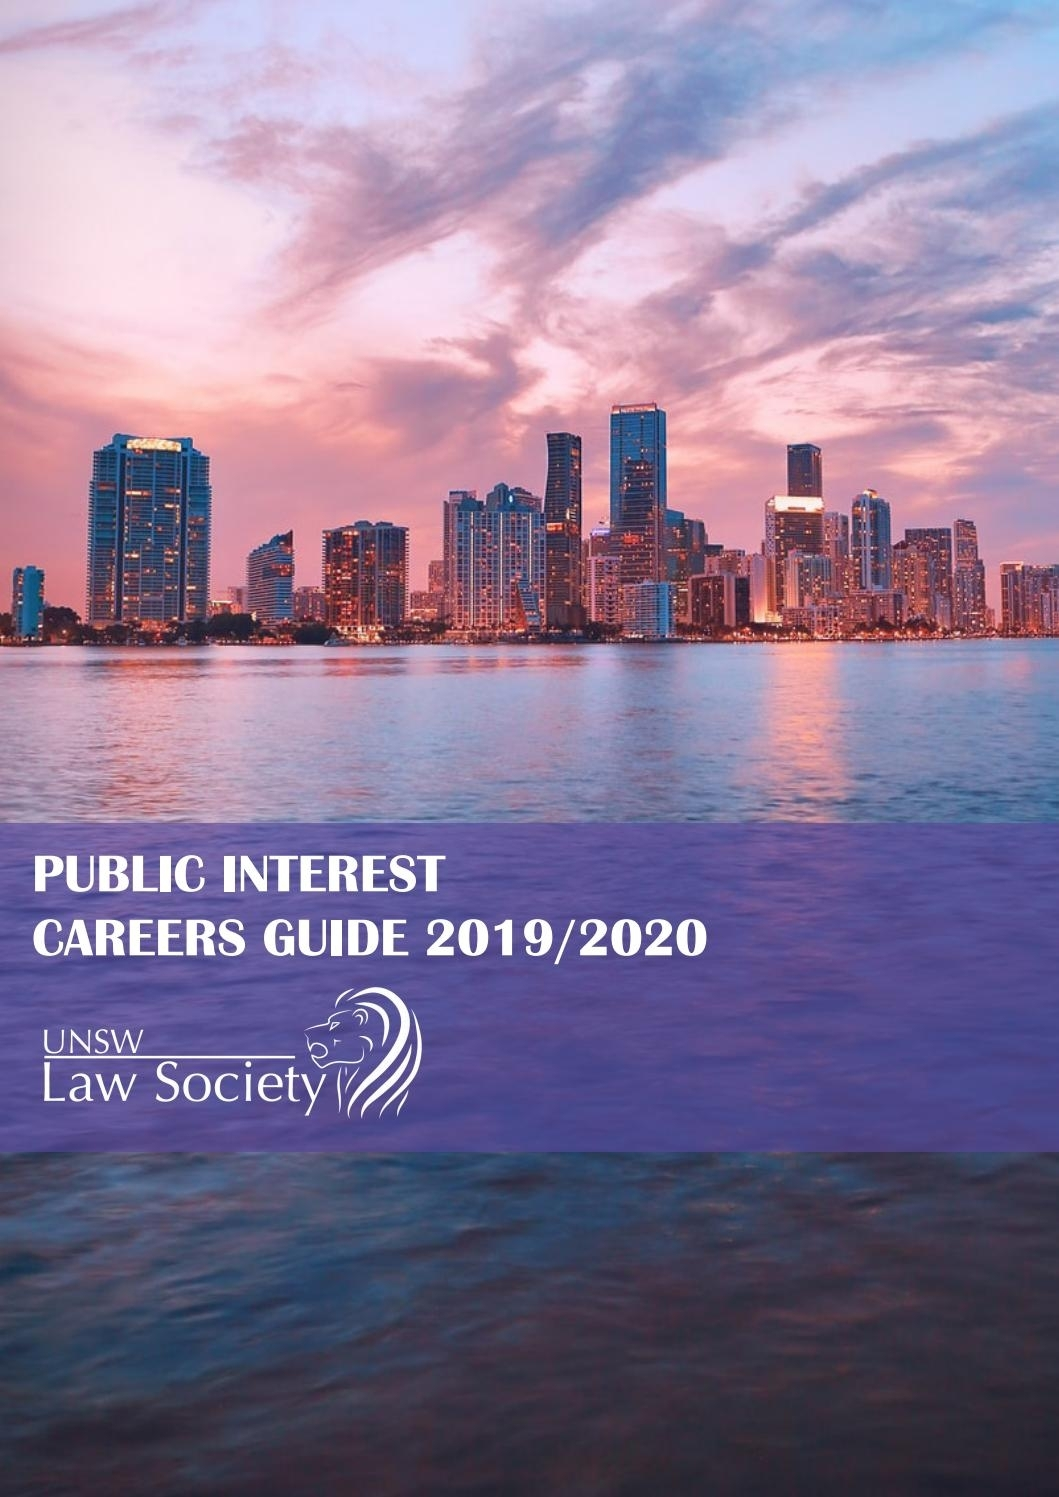 Unsw Law Society Public Interest Careers Guide 2019/2020